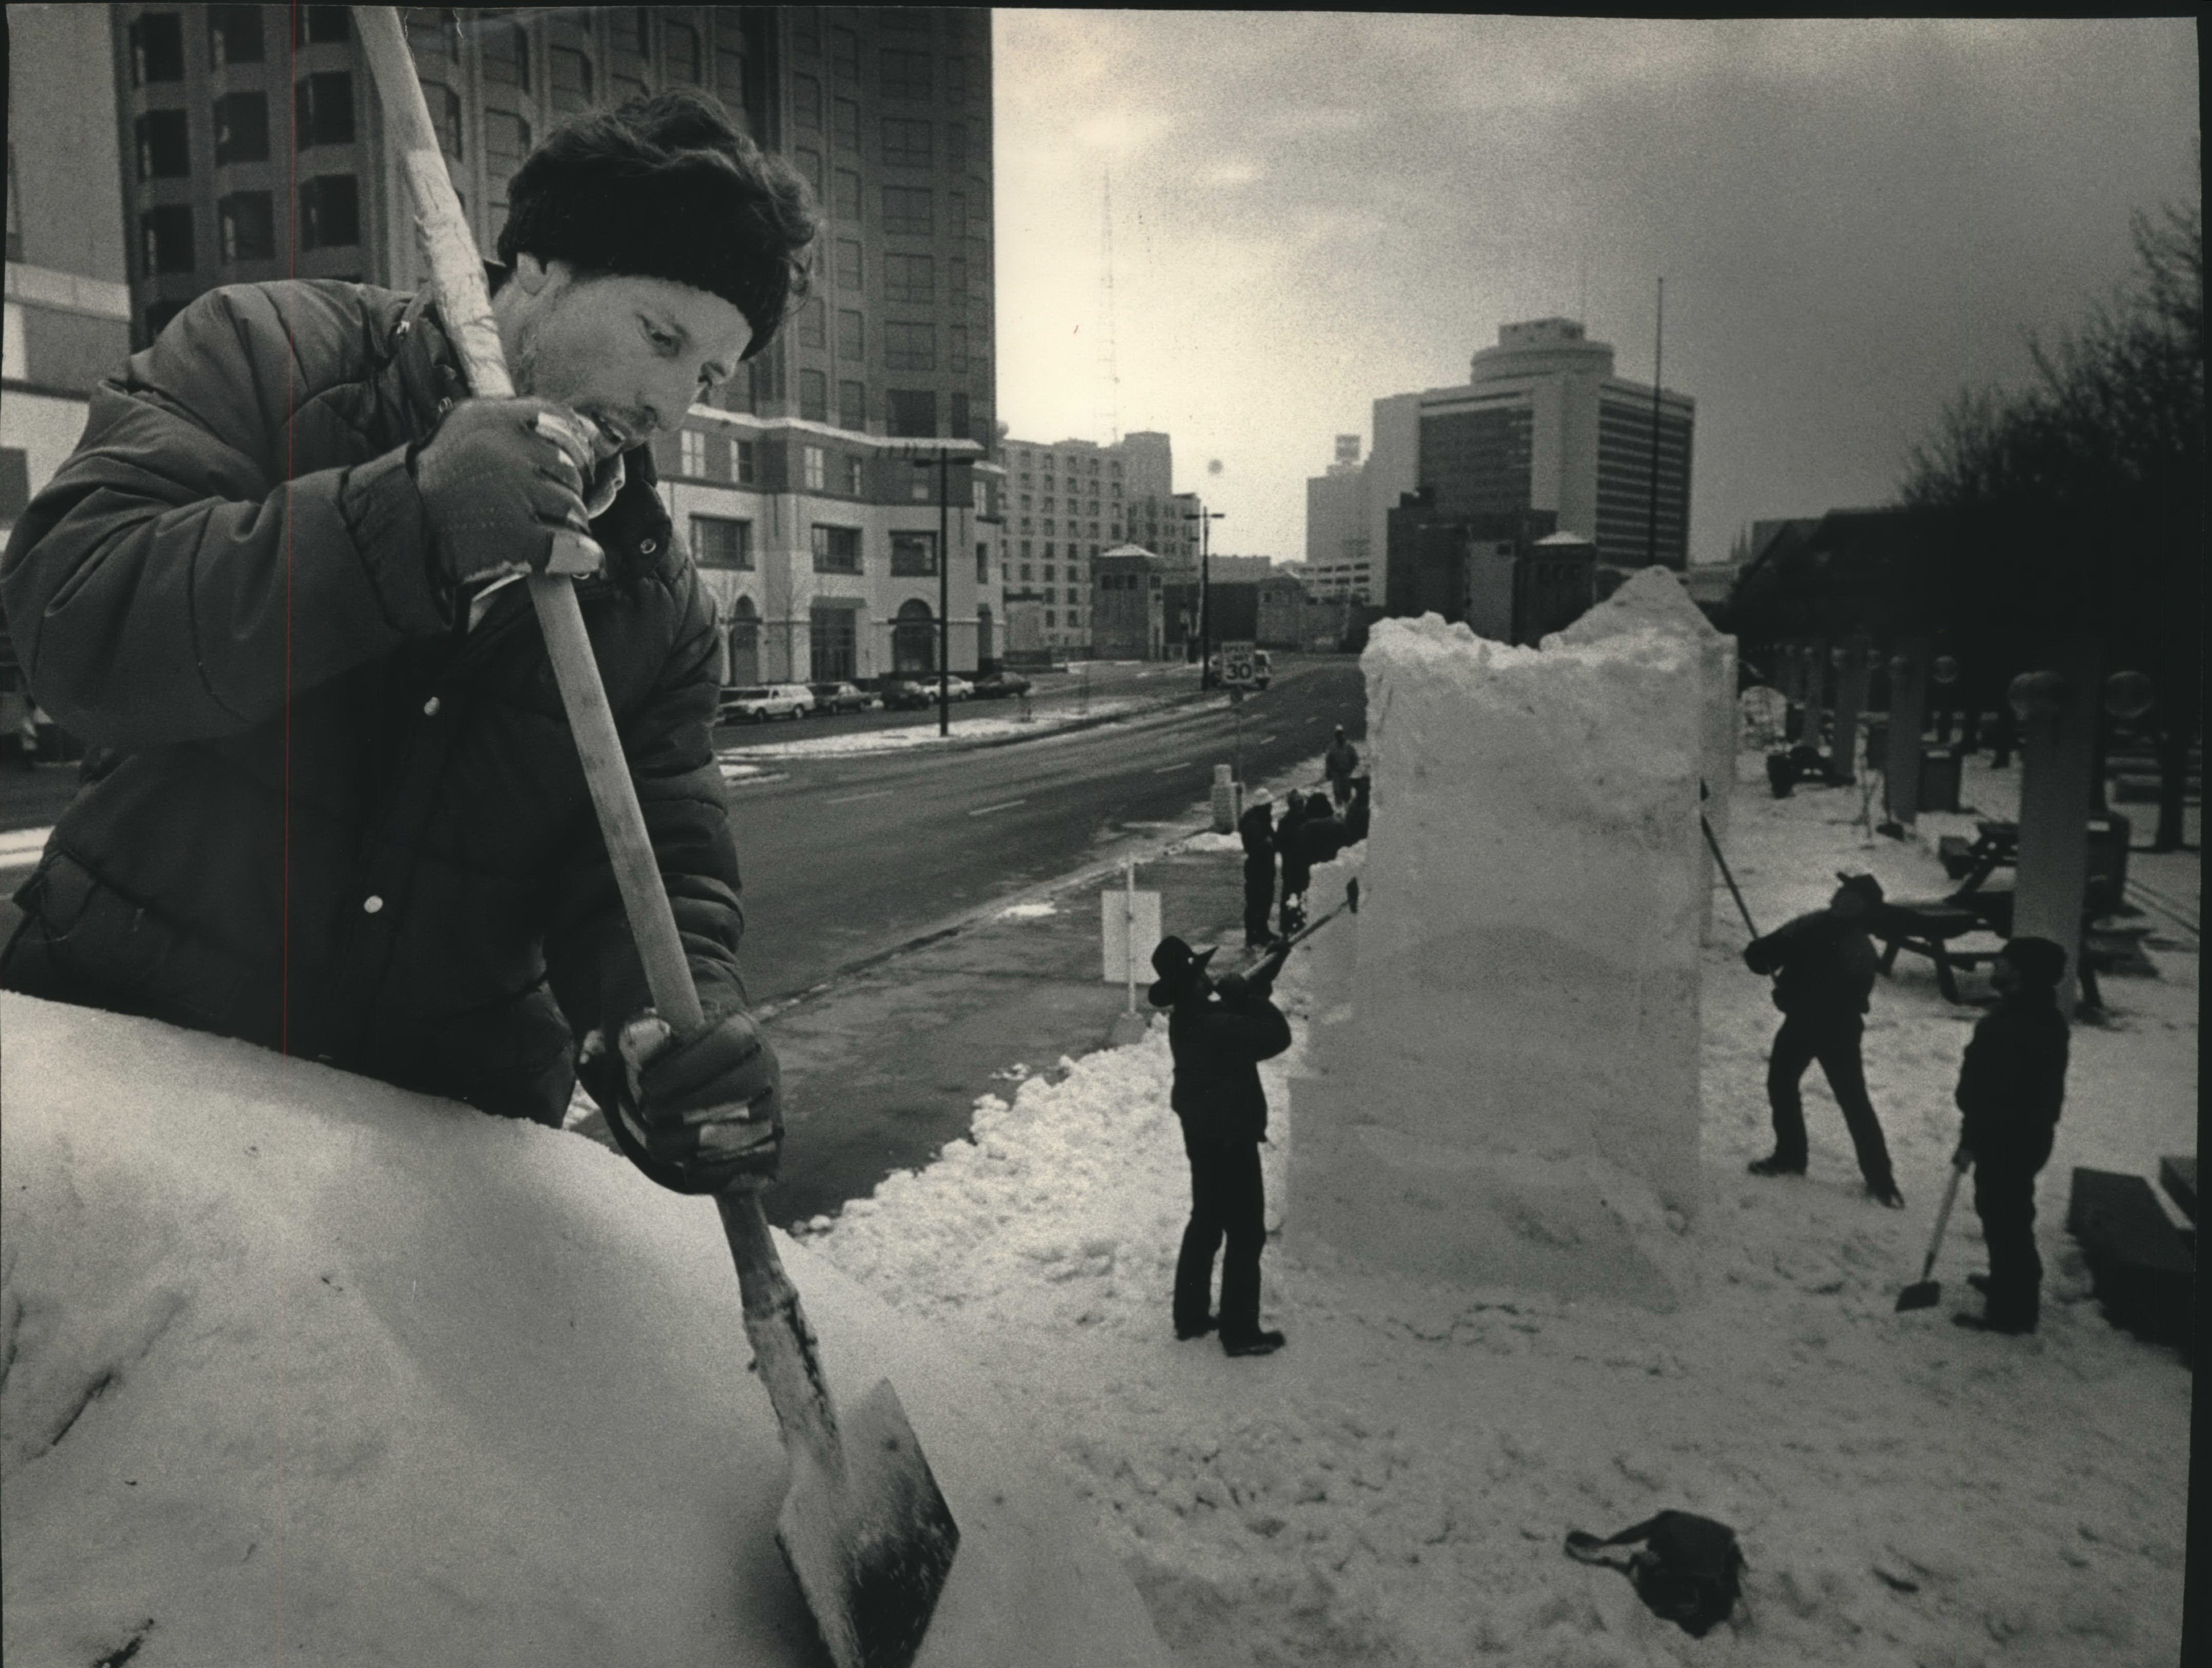 """Edger Suniga Jiminez, a member of the Costa Rica snow-sculpting team, works high atop the team's creation called """"Waiting,"""" which will depict humanity waiting for a better world. The sculpture is taking shape on East Kilbourn Avenue near North Water Street in front of the Performing Arts Center. Eighteen three-person teams from 14 nations are participating in the U.S. International Snow Sculpting Competition through Saturday on the PAC grounds and in Pere Marquette Park."""